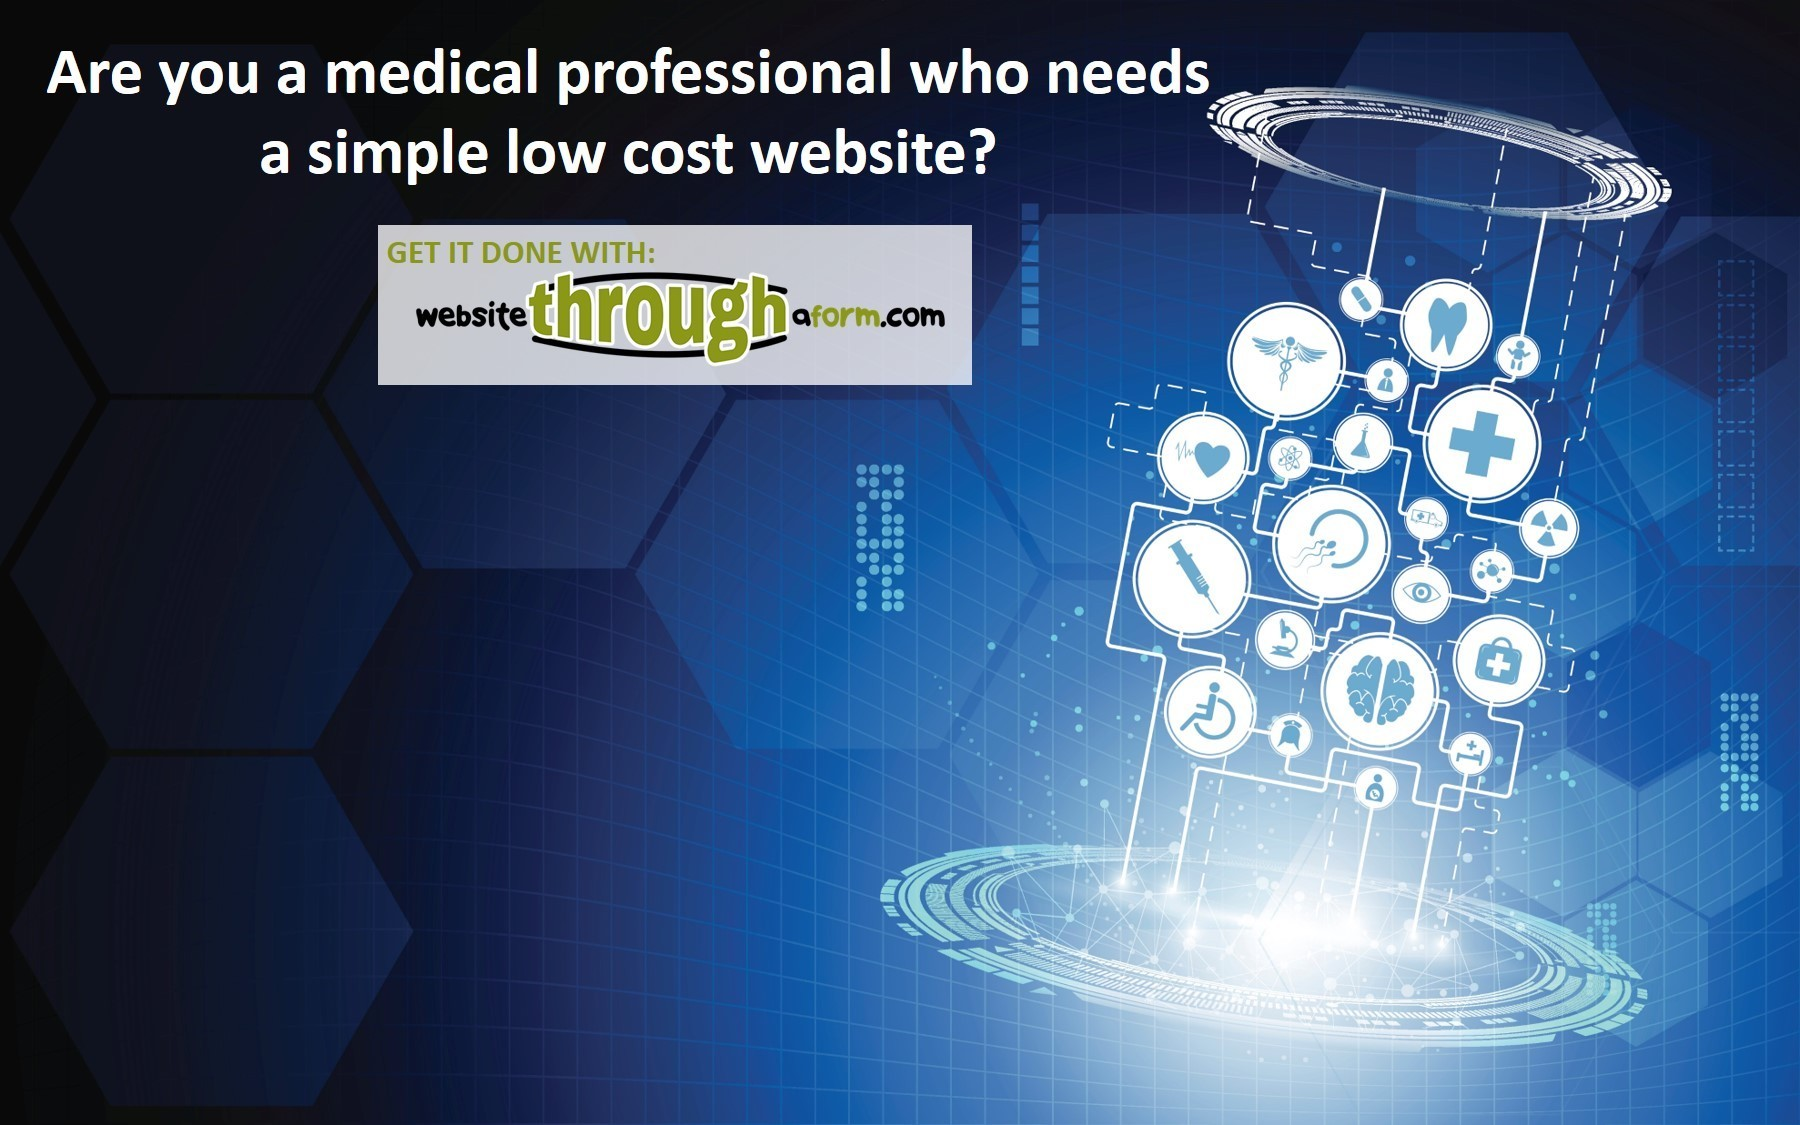 Are You A Medical Professional Who Needs A Simple Low Cost Website